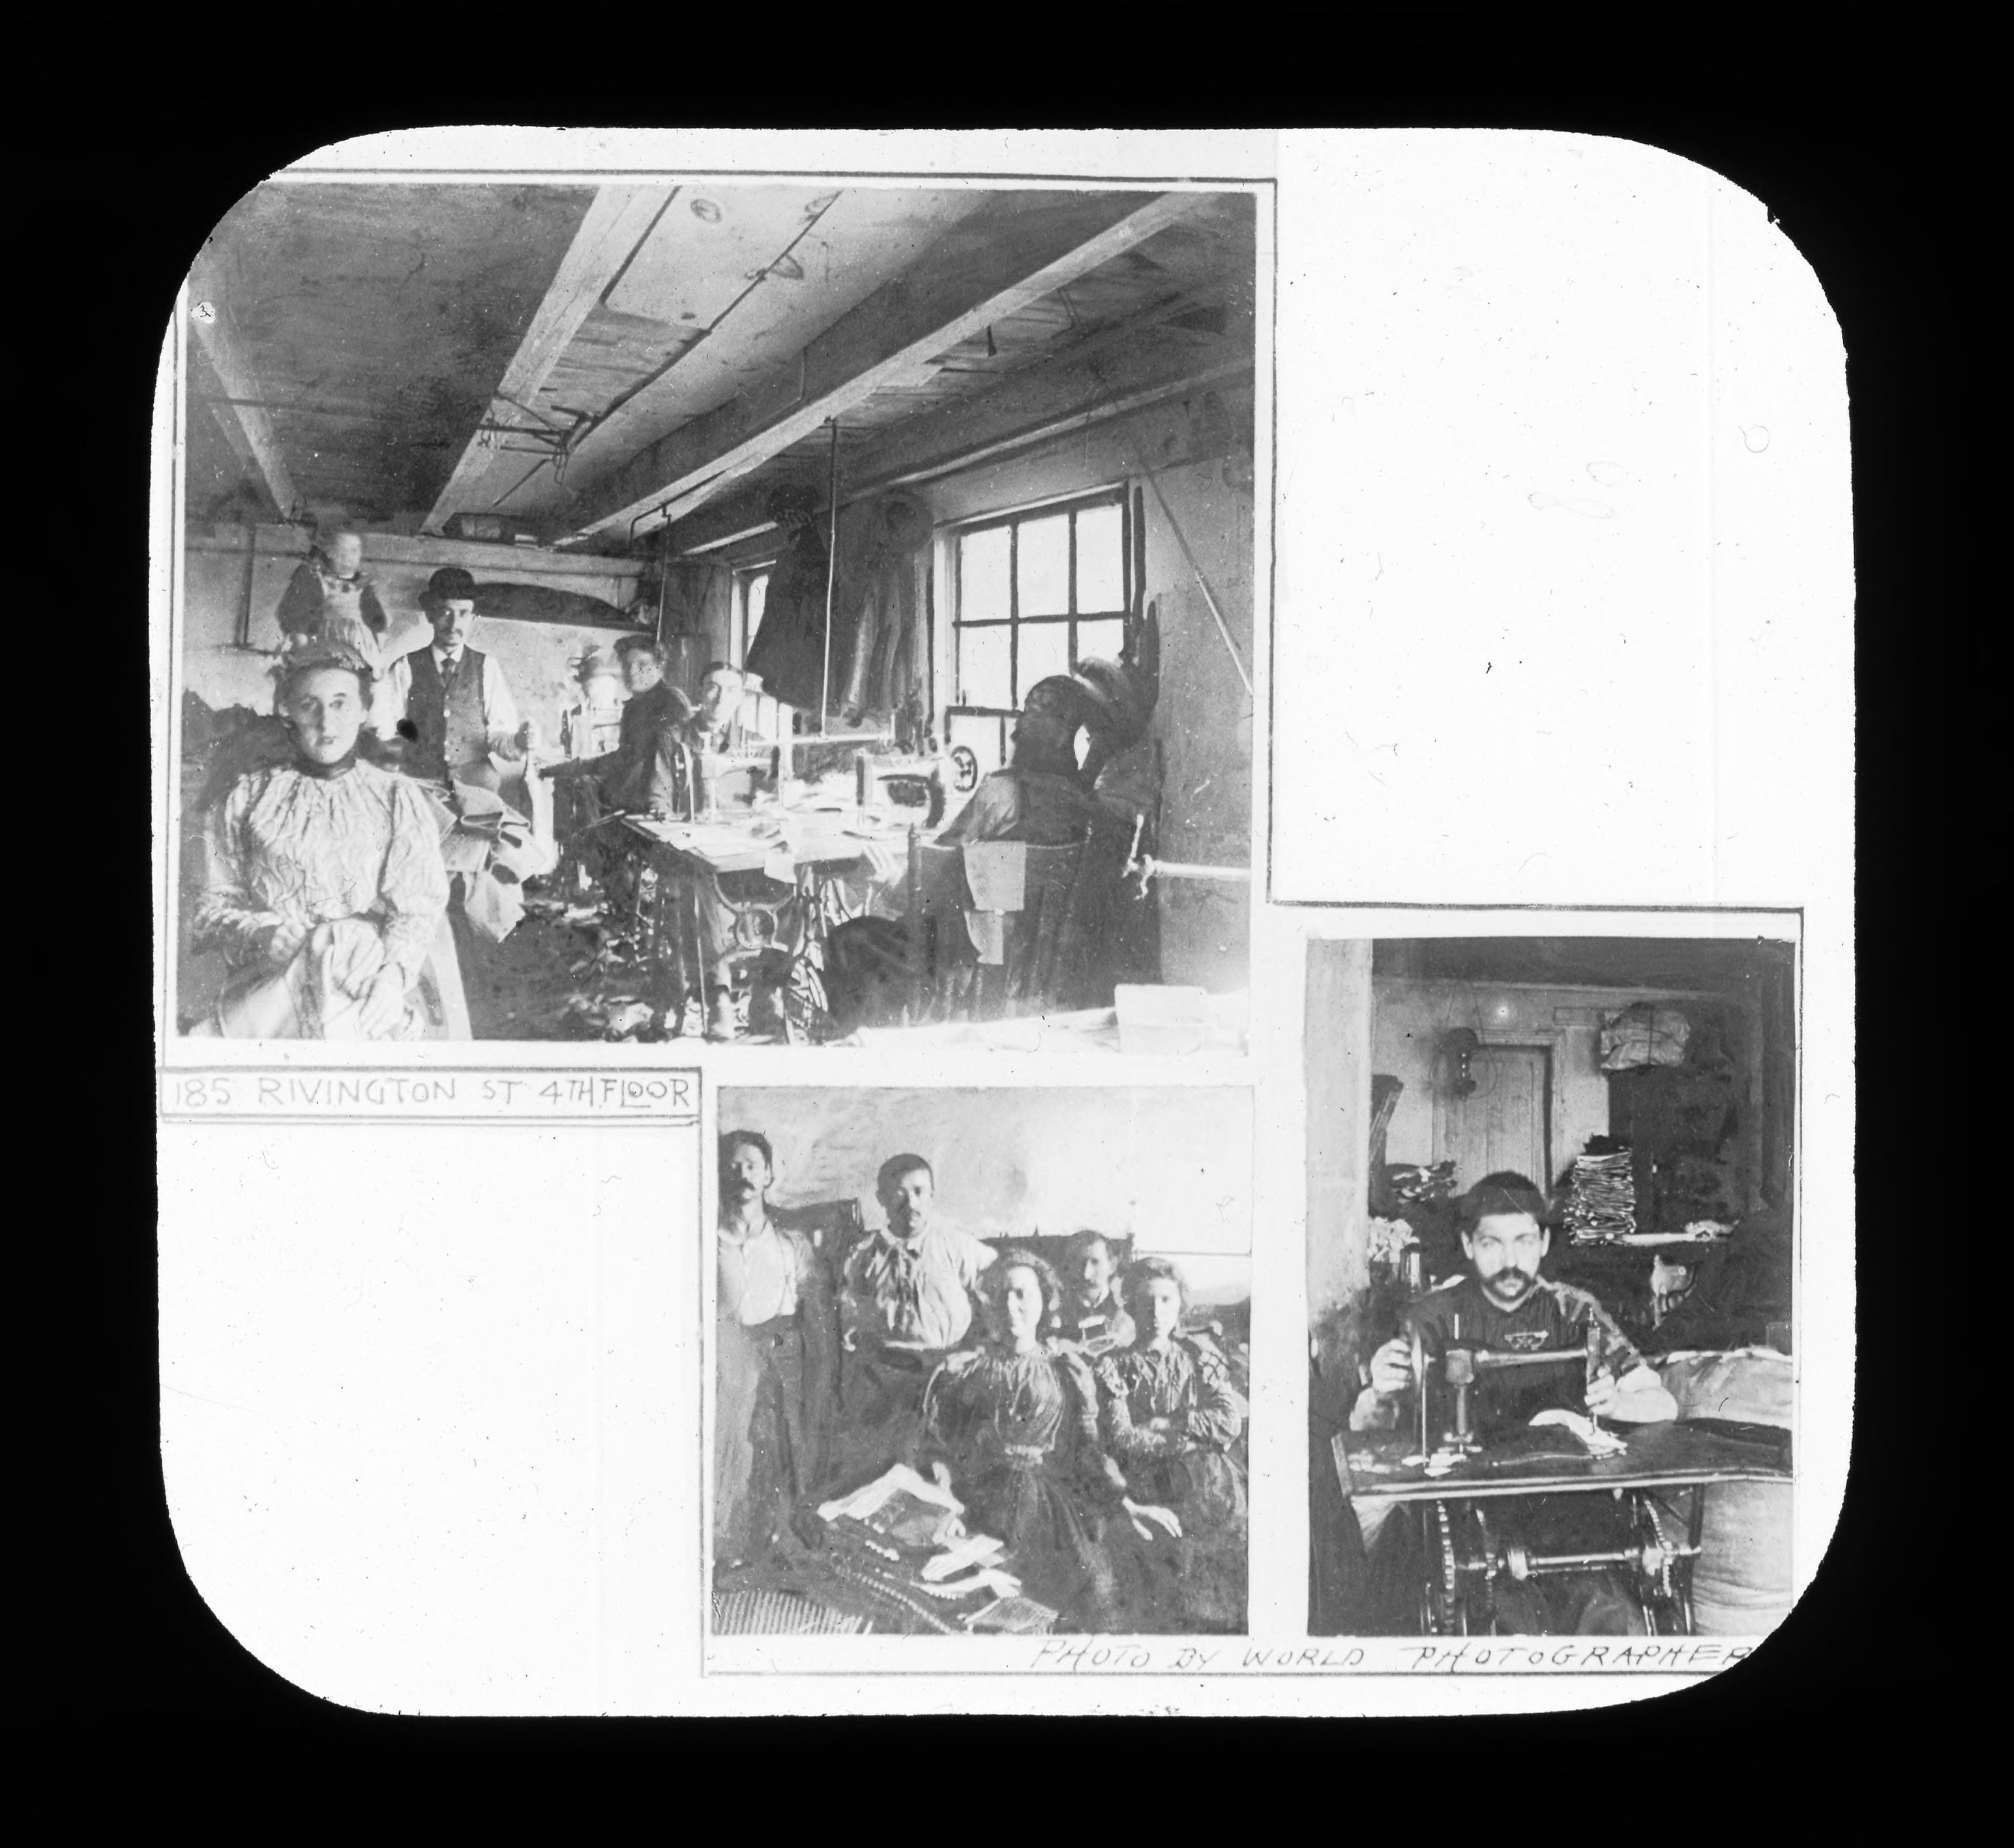 Room of workers 5. Photograph by Rubenstein. Source: UNITE HERE Archives, Kheel Center, Cornell University Date: Circa 1886